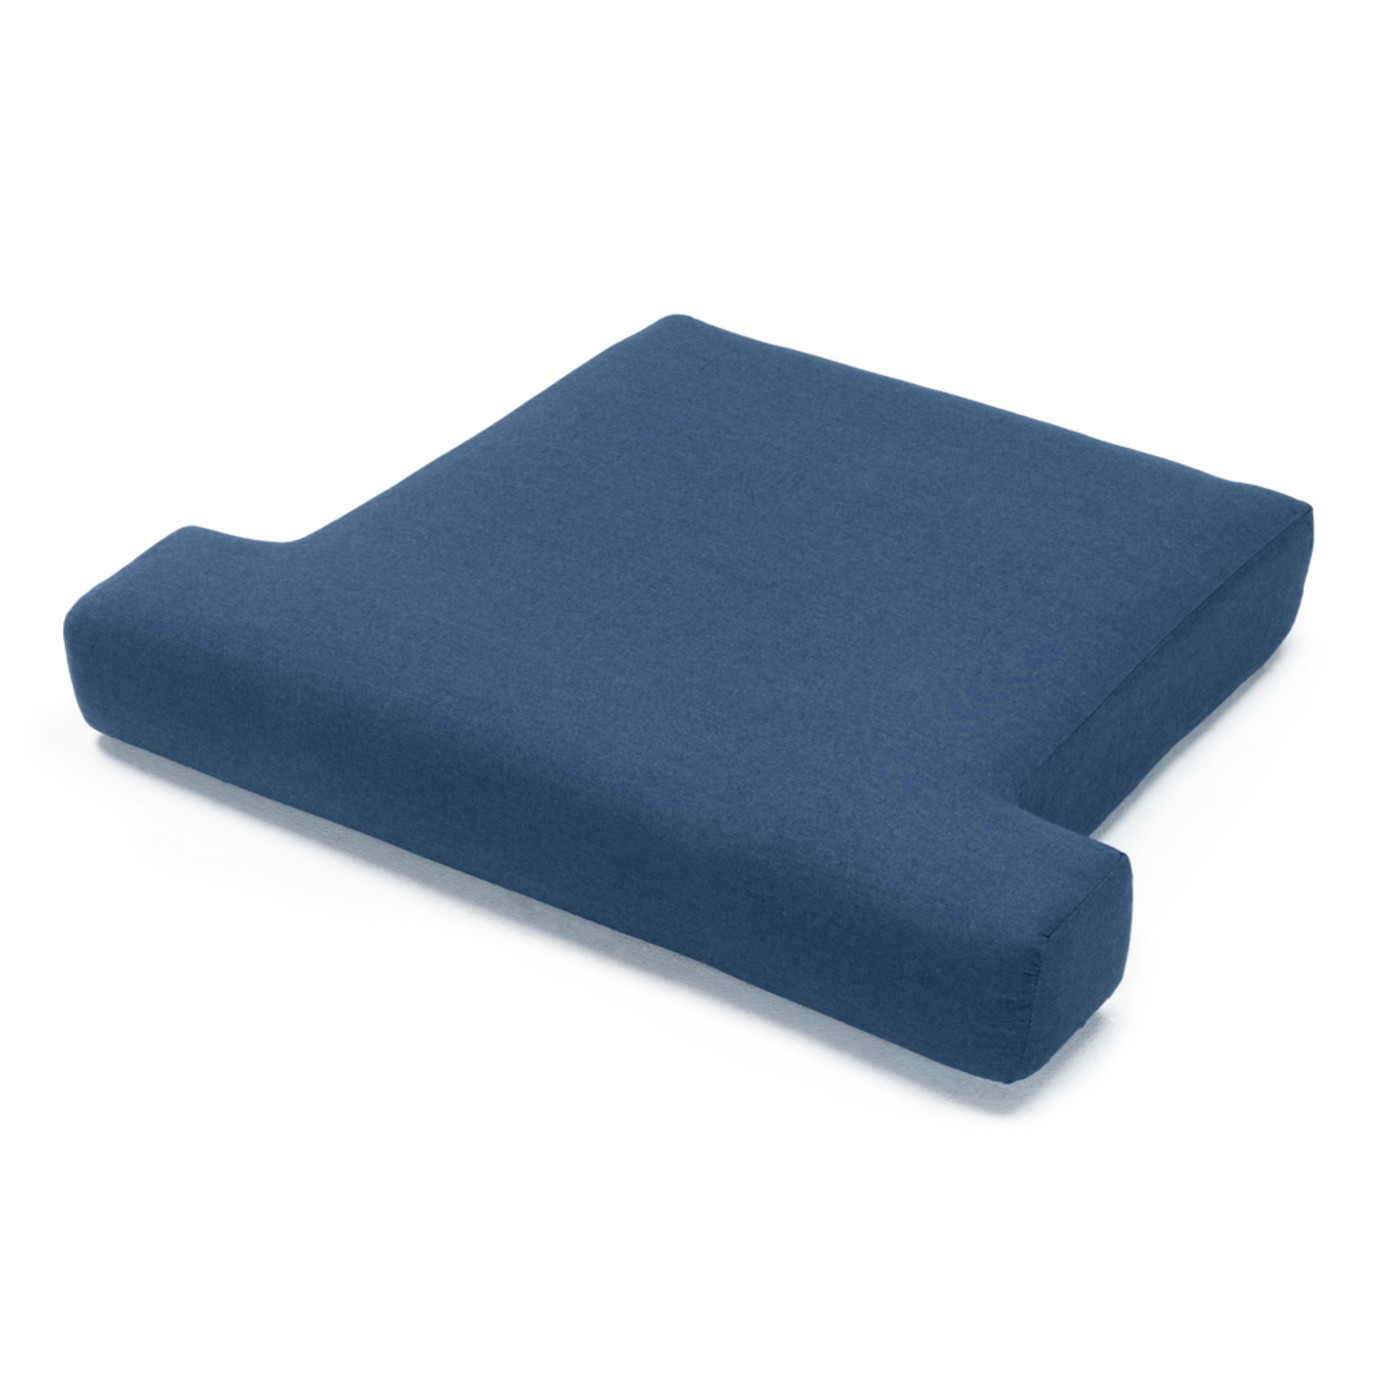 Portofino Comfort Club Chair Base Cushion - Laguna Blue